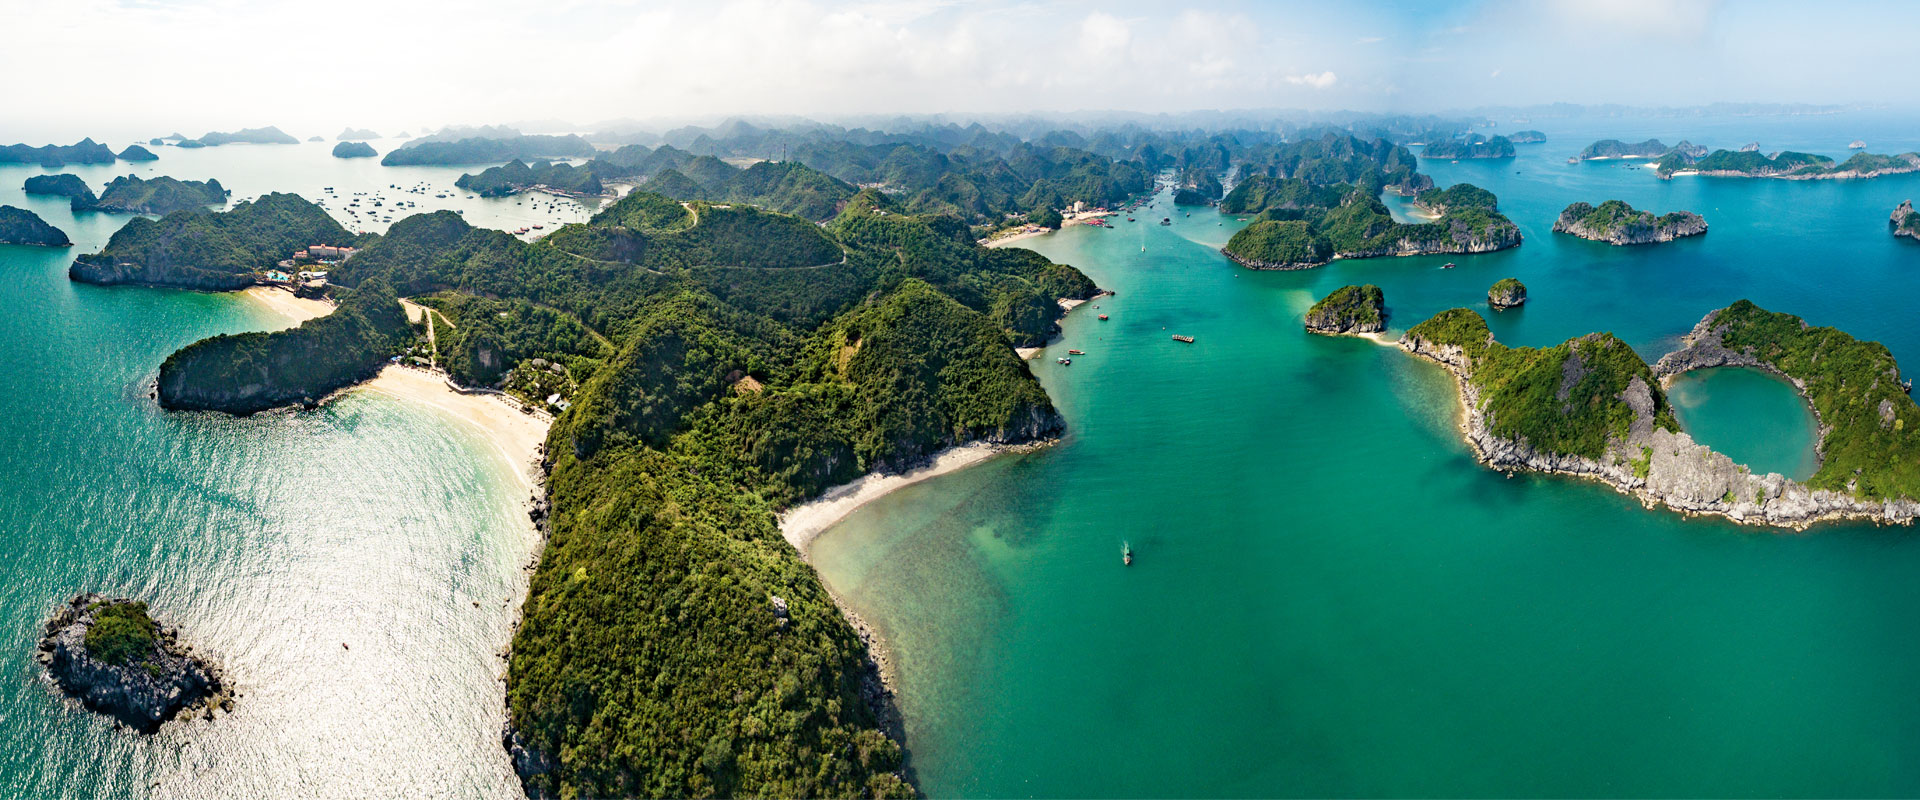 Lan Ha Bay in autumn, the most beautiful time of the year